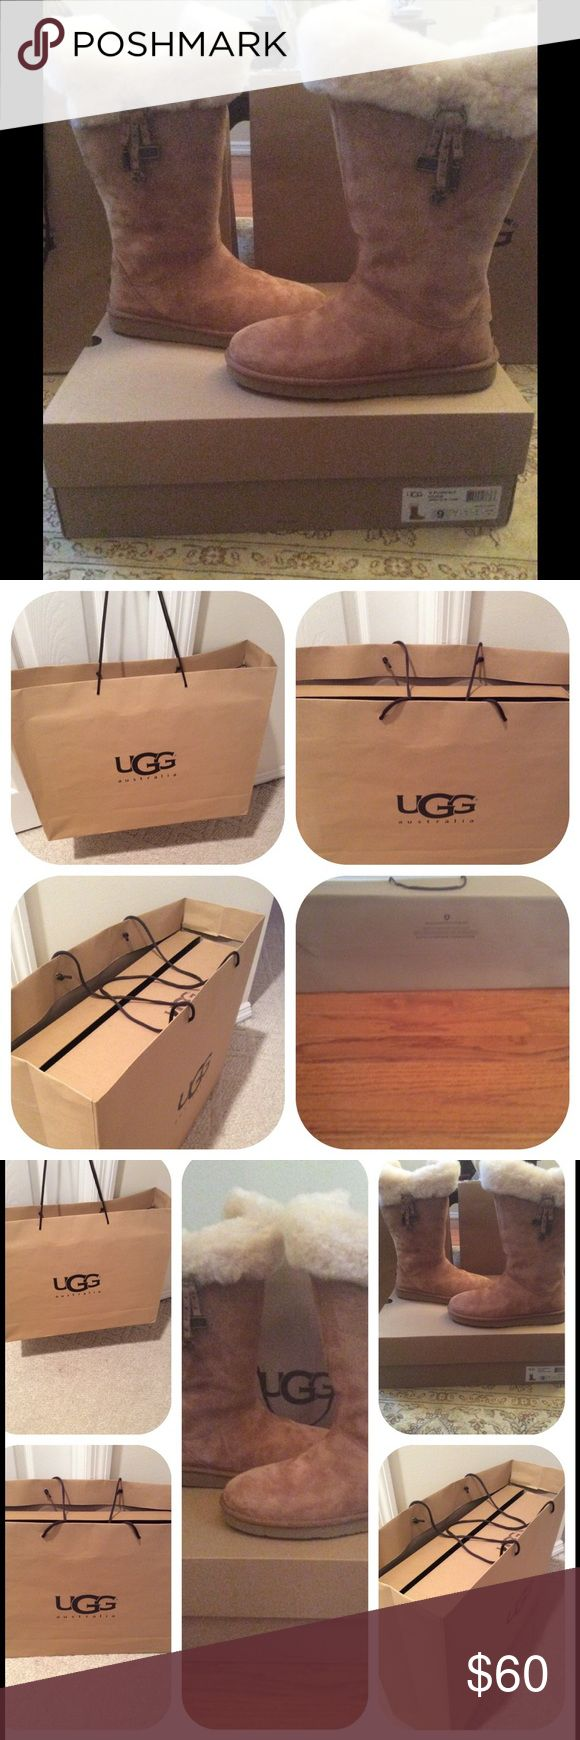 """UGG Shopping Bags and Box Ugg shopping bags and Box. Shopping bag is 16"""" X 2 ft. The box fits size 9 boots dimensions: 19 x 14"""".  Two bags and one box. Bags are $25 each. Buy both for $45. Box is $20. Buy all three for $60 (set price is firm). Will add the 2 authentic UGG cards if you purchase all three. UGG Shoes"""